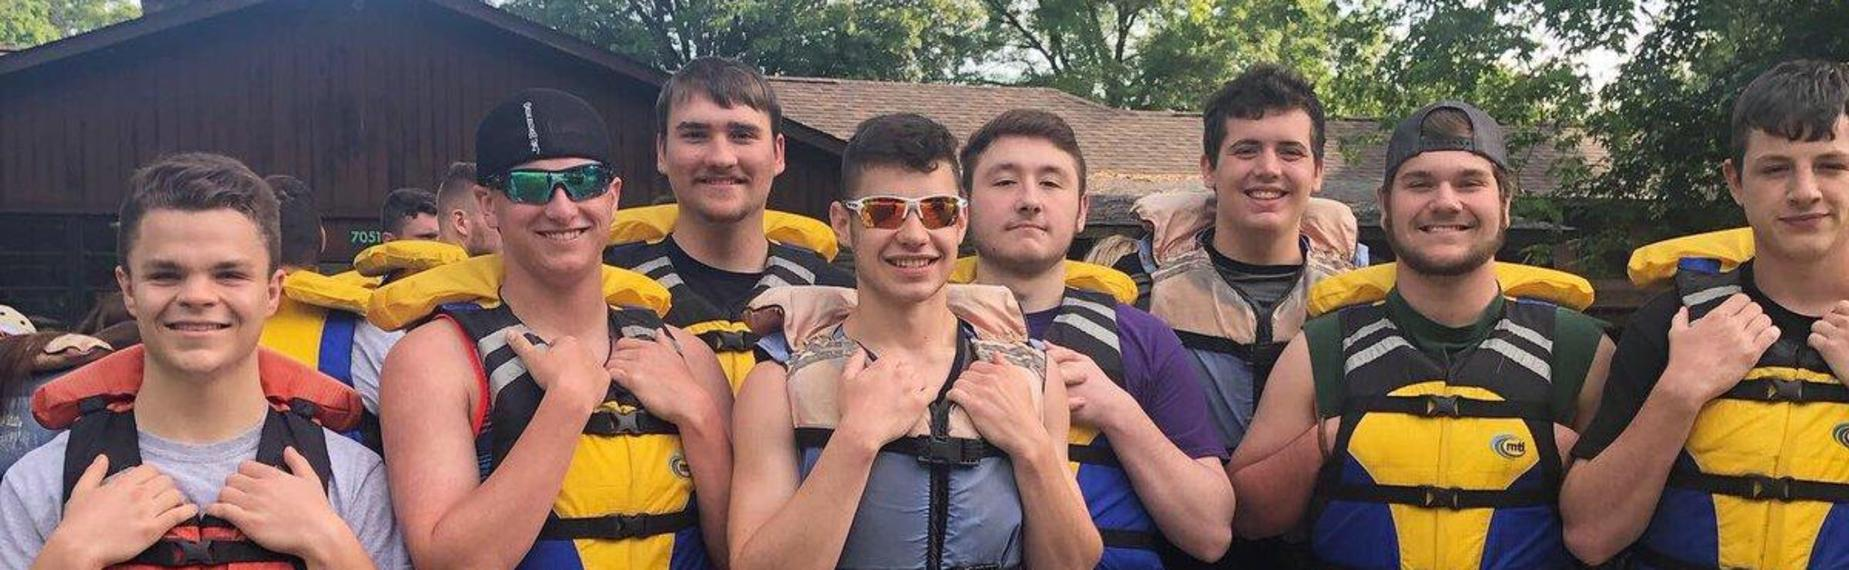 Seniors White Water Rafting